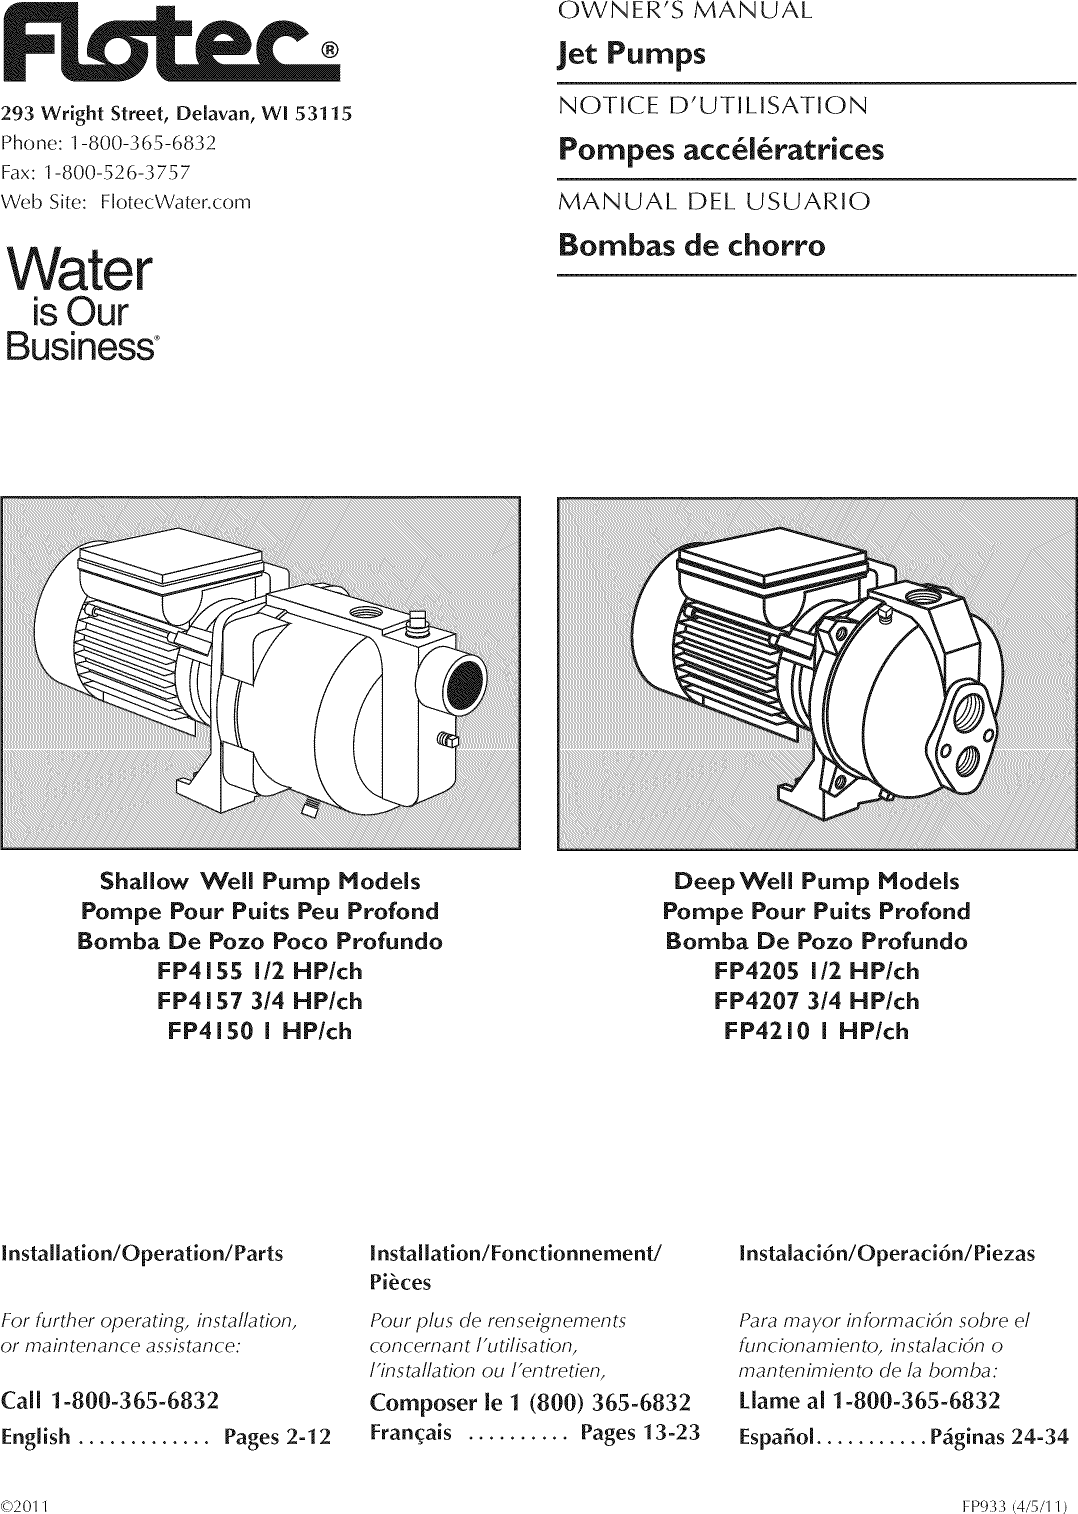 Bilge Pump Manual Guide